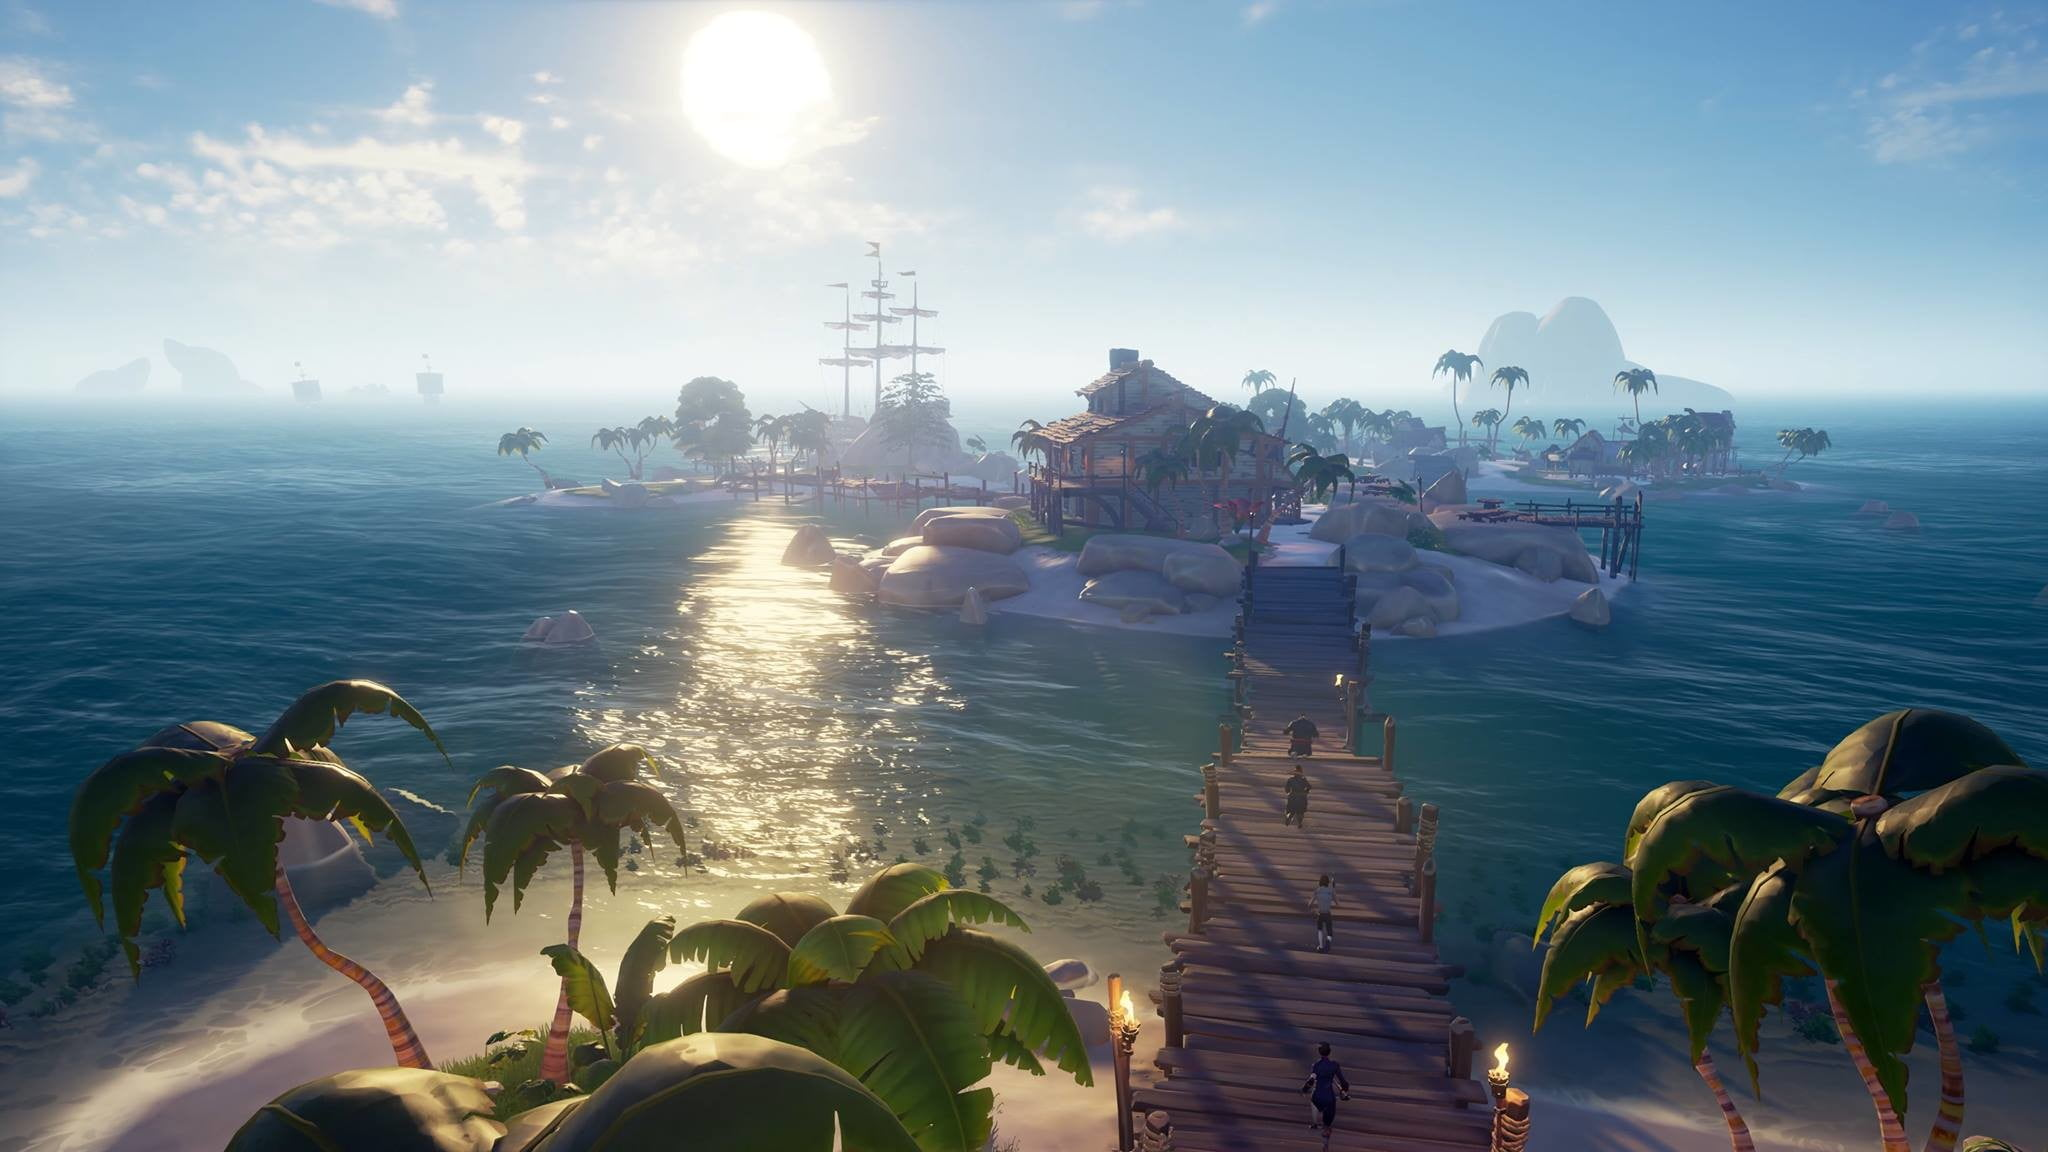 Sea Of Thieves   Island with people